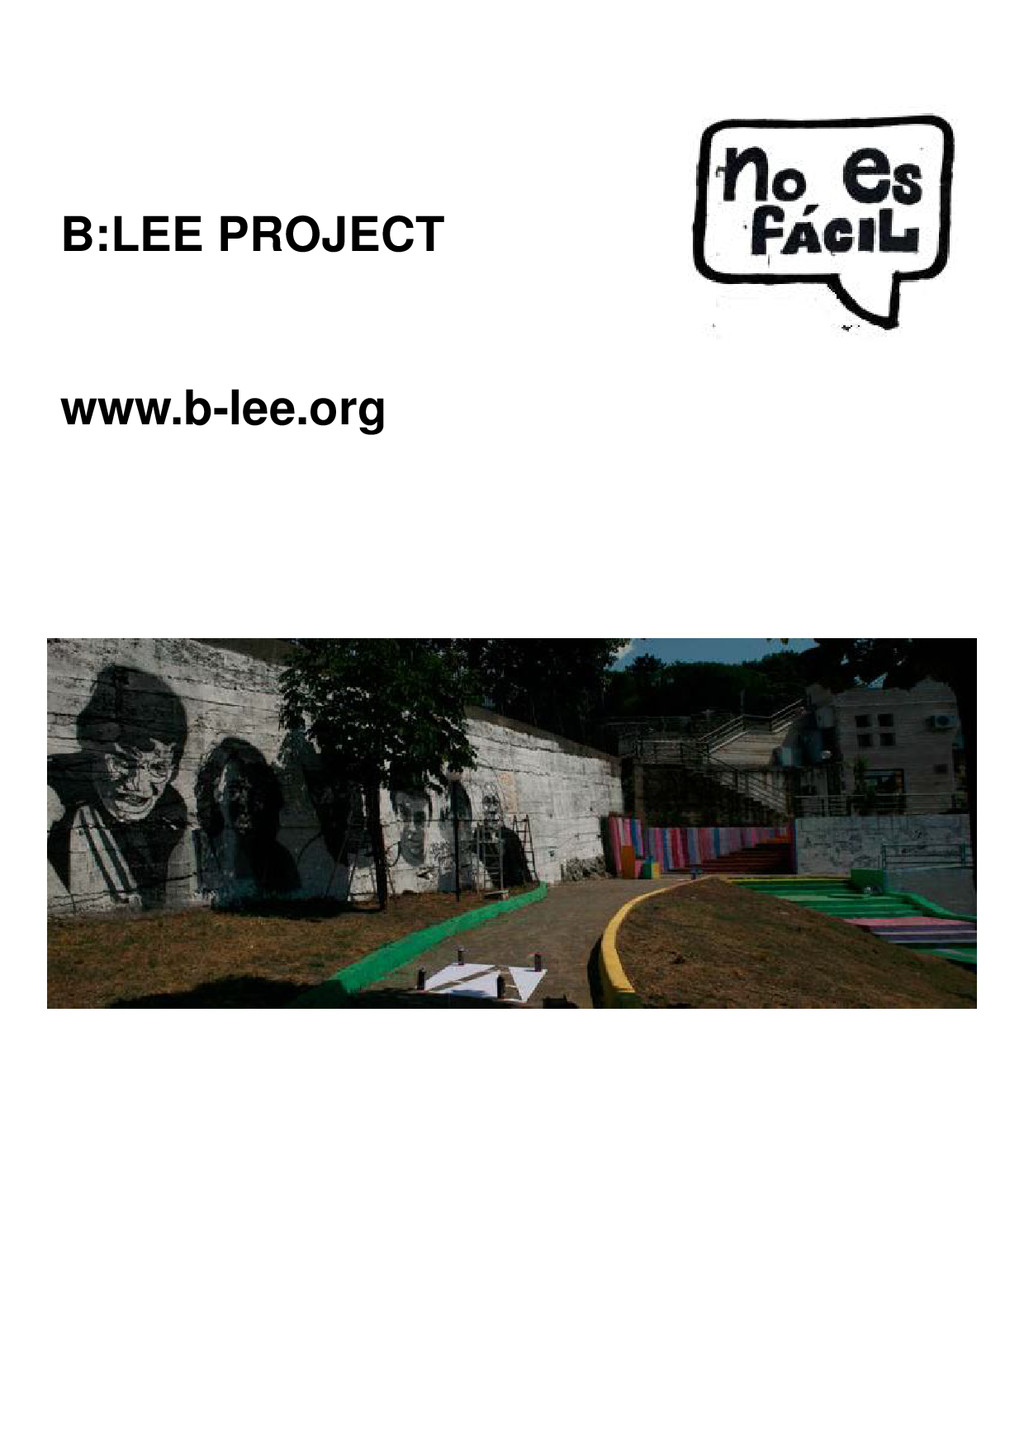 B:LEE PROJECT B:LEE PROJECT www.b-lee.org